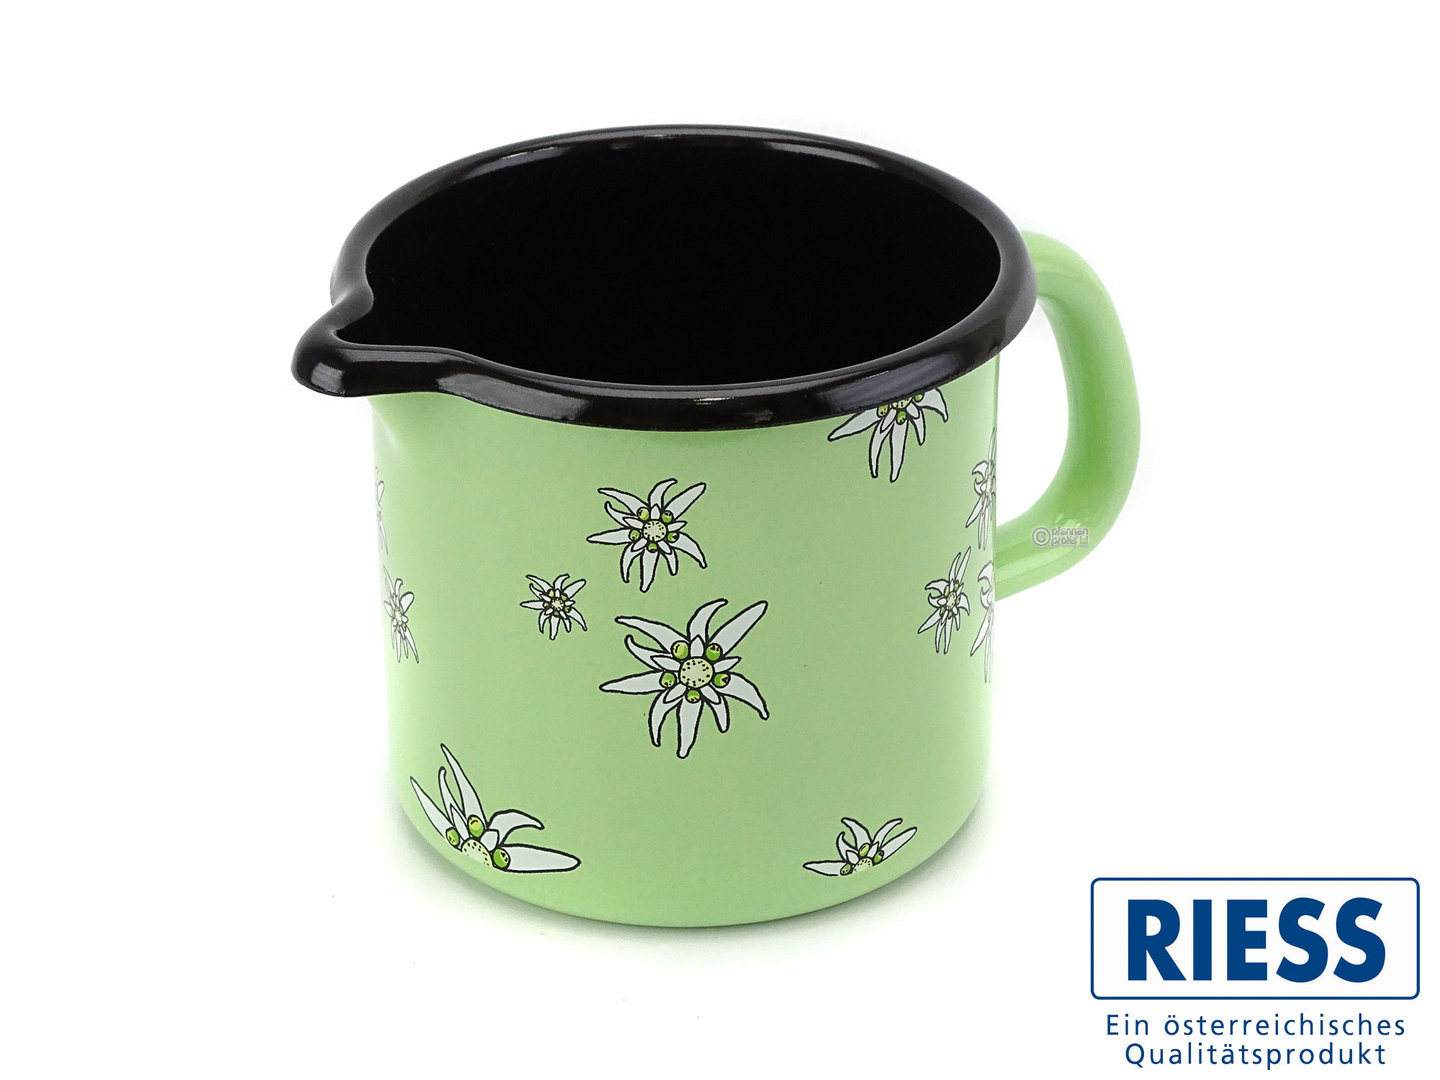 RIESS milk pot enamel edelweiss green 10 cm 0,75 Liter